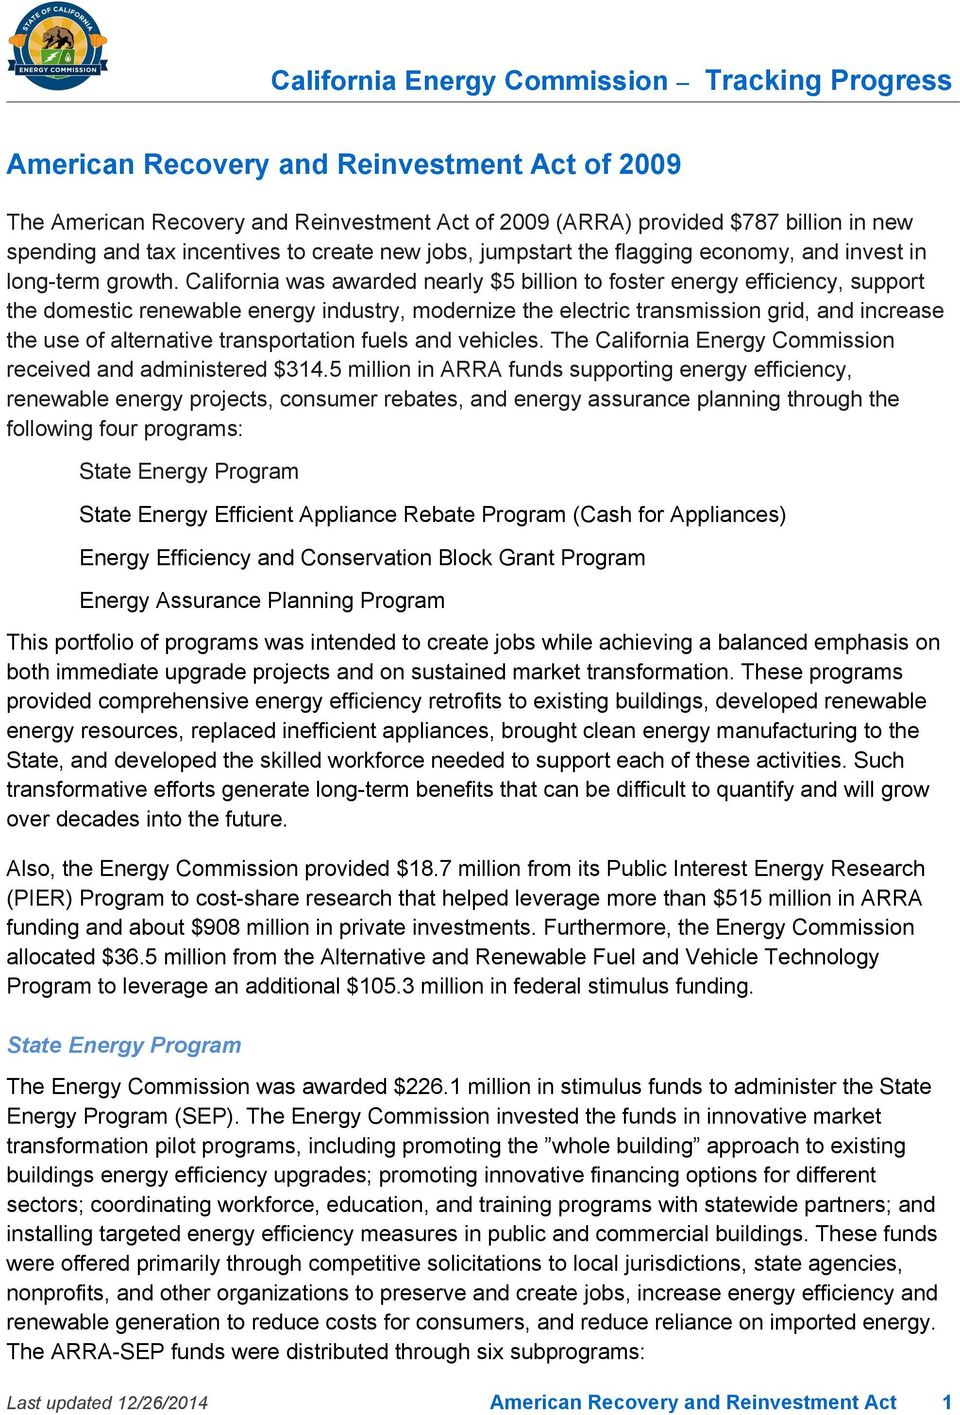 California was awarded nearly $5 billion to foster energy efficiency, support the domestic renewable energy industry, modernize the electric transmission grid, and increase the use of alternative